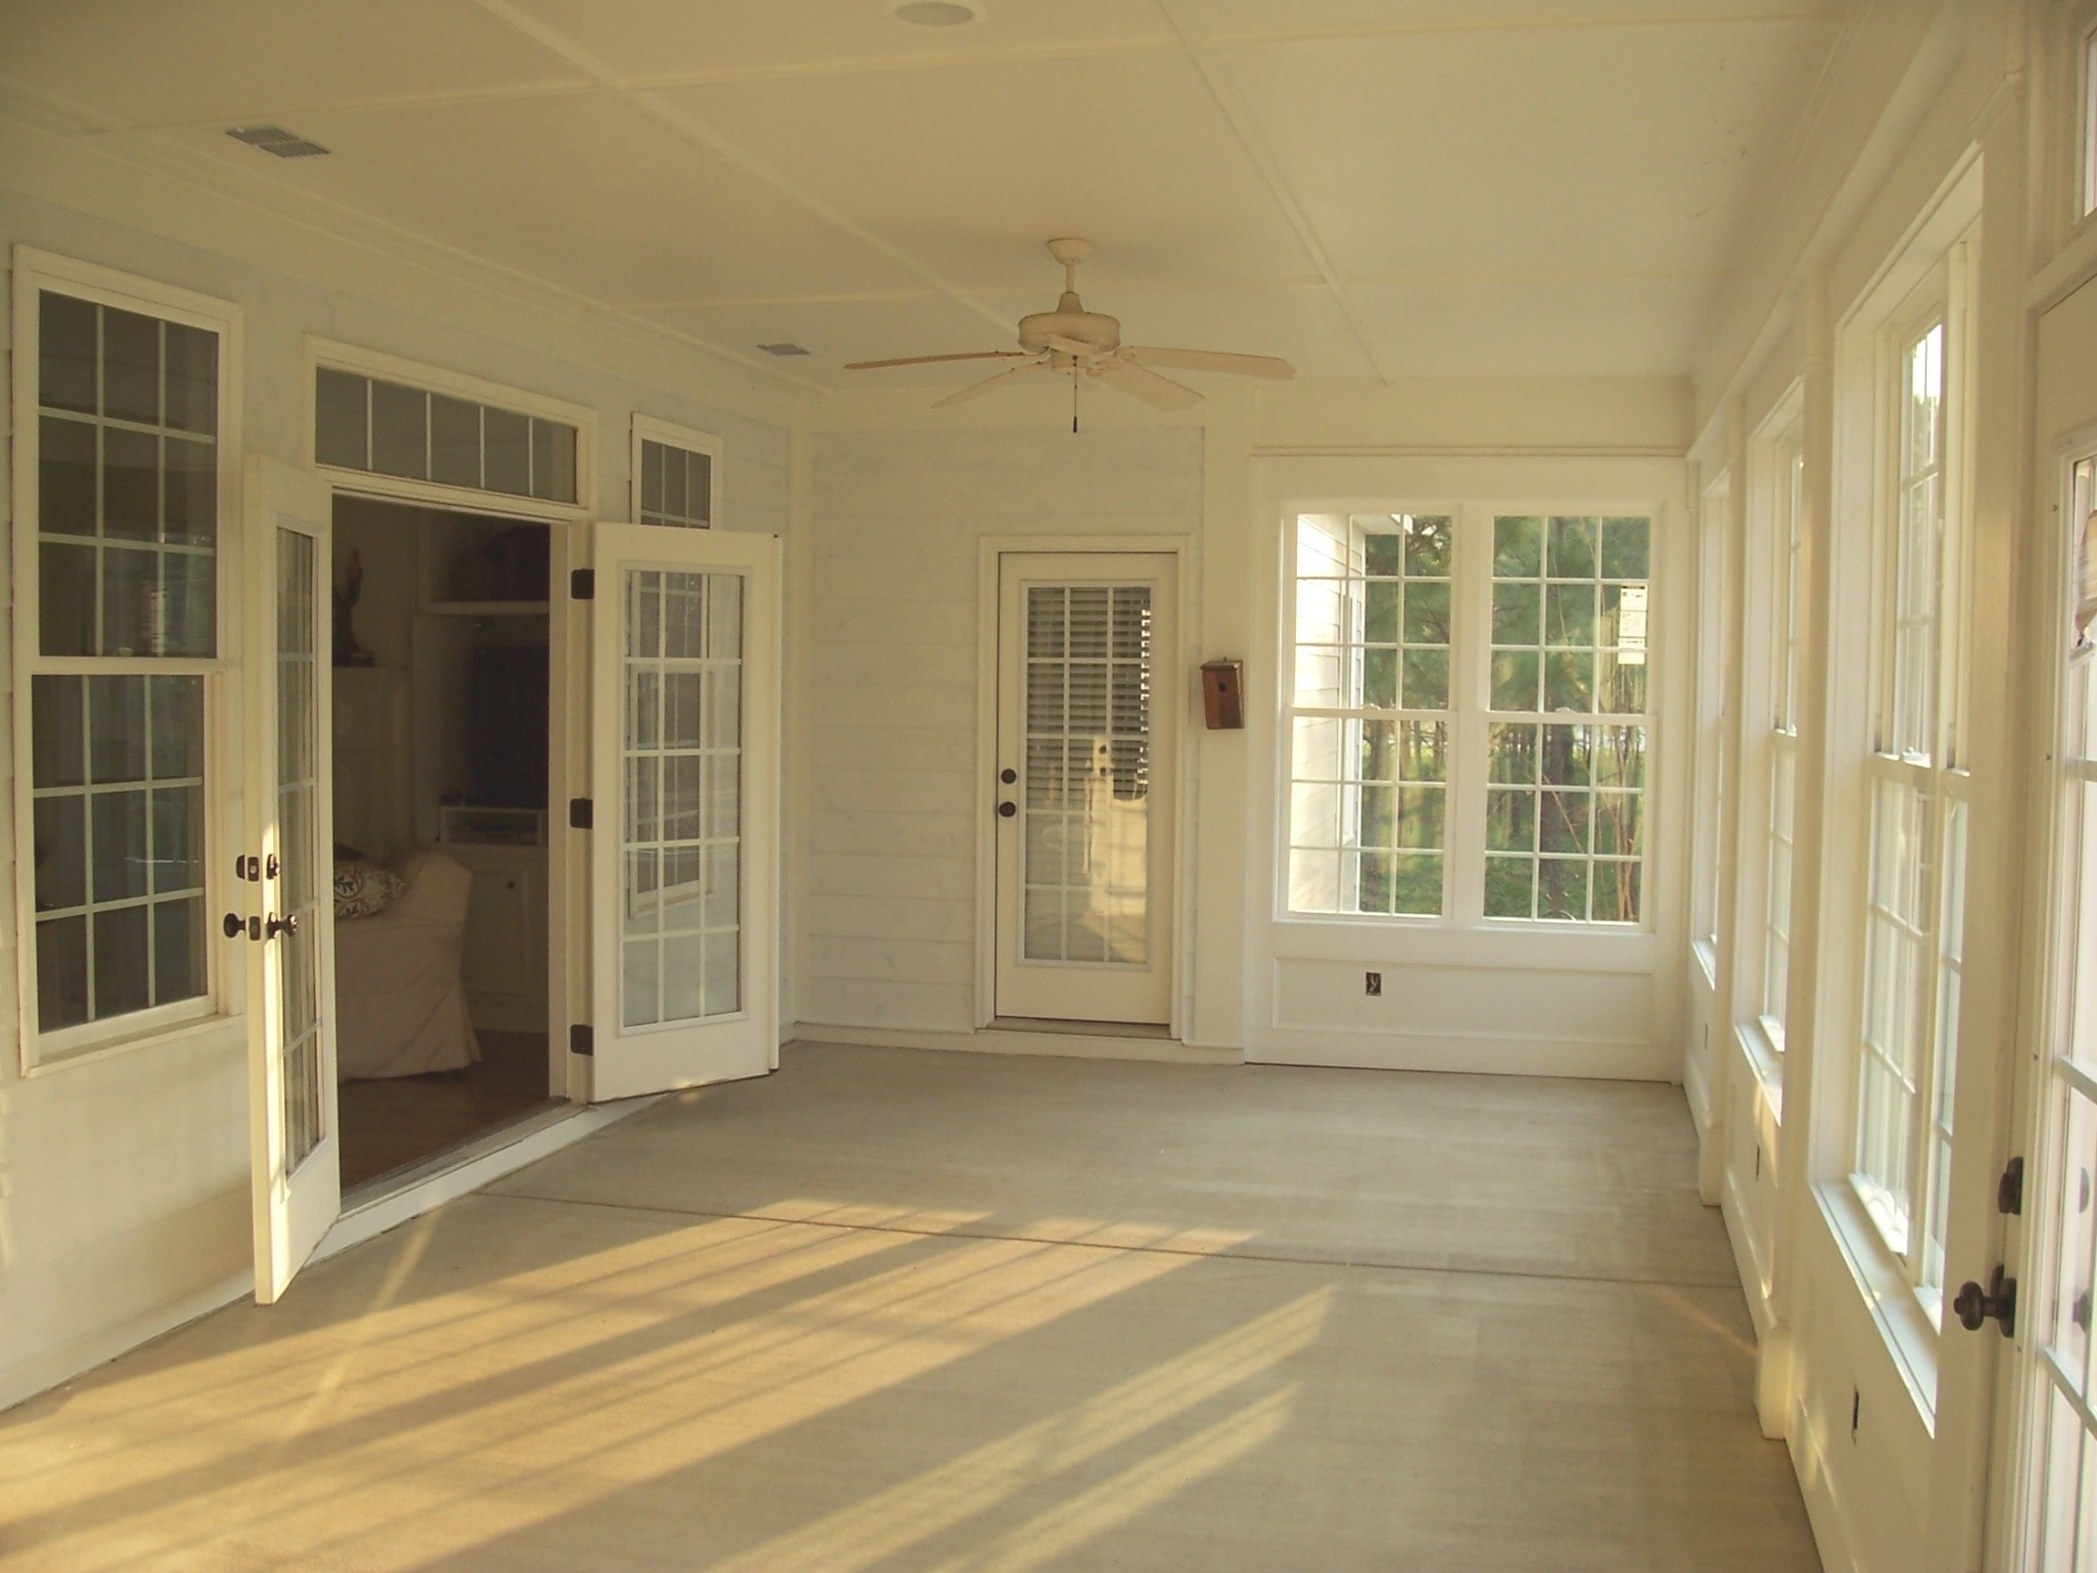 Remodel Project - Screen Porch Turned Into Sun Room/Sun within Turning Living Room Into Bedroom